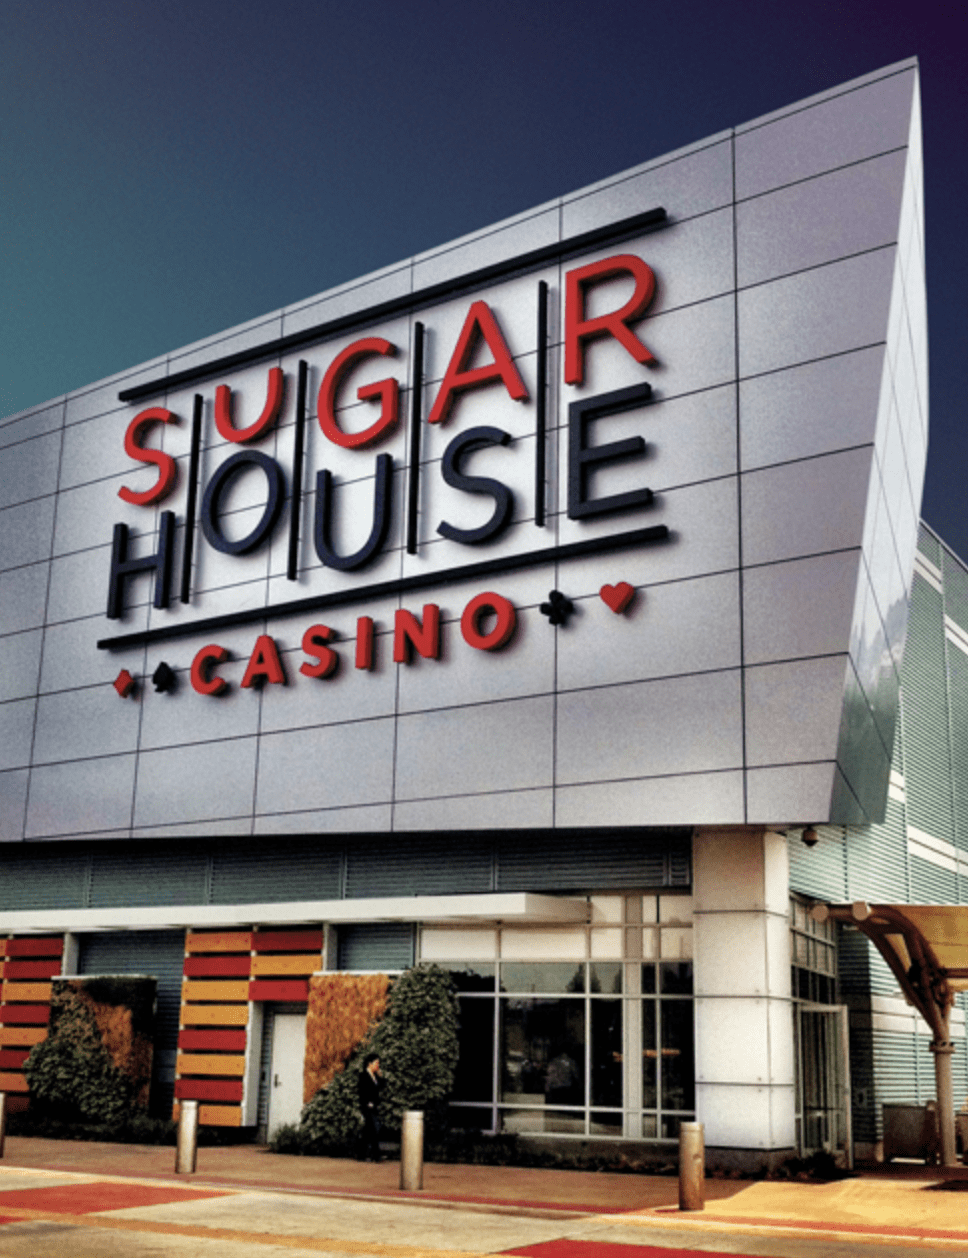 Sugarhouse Nj